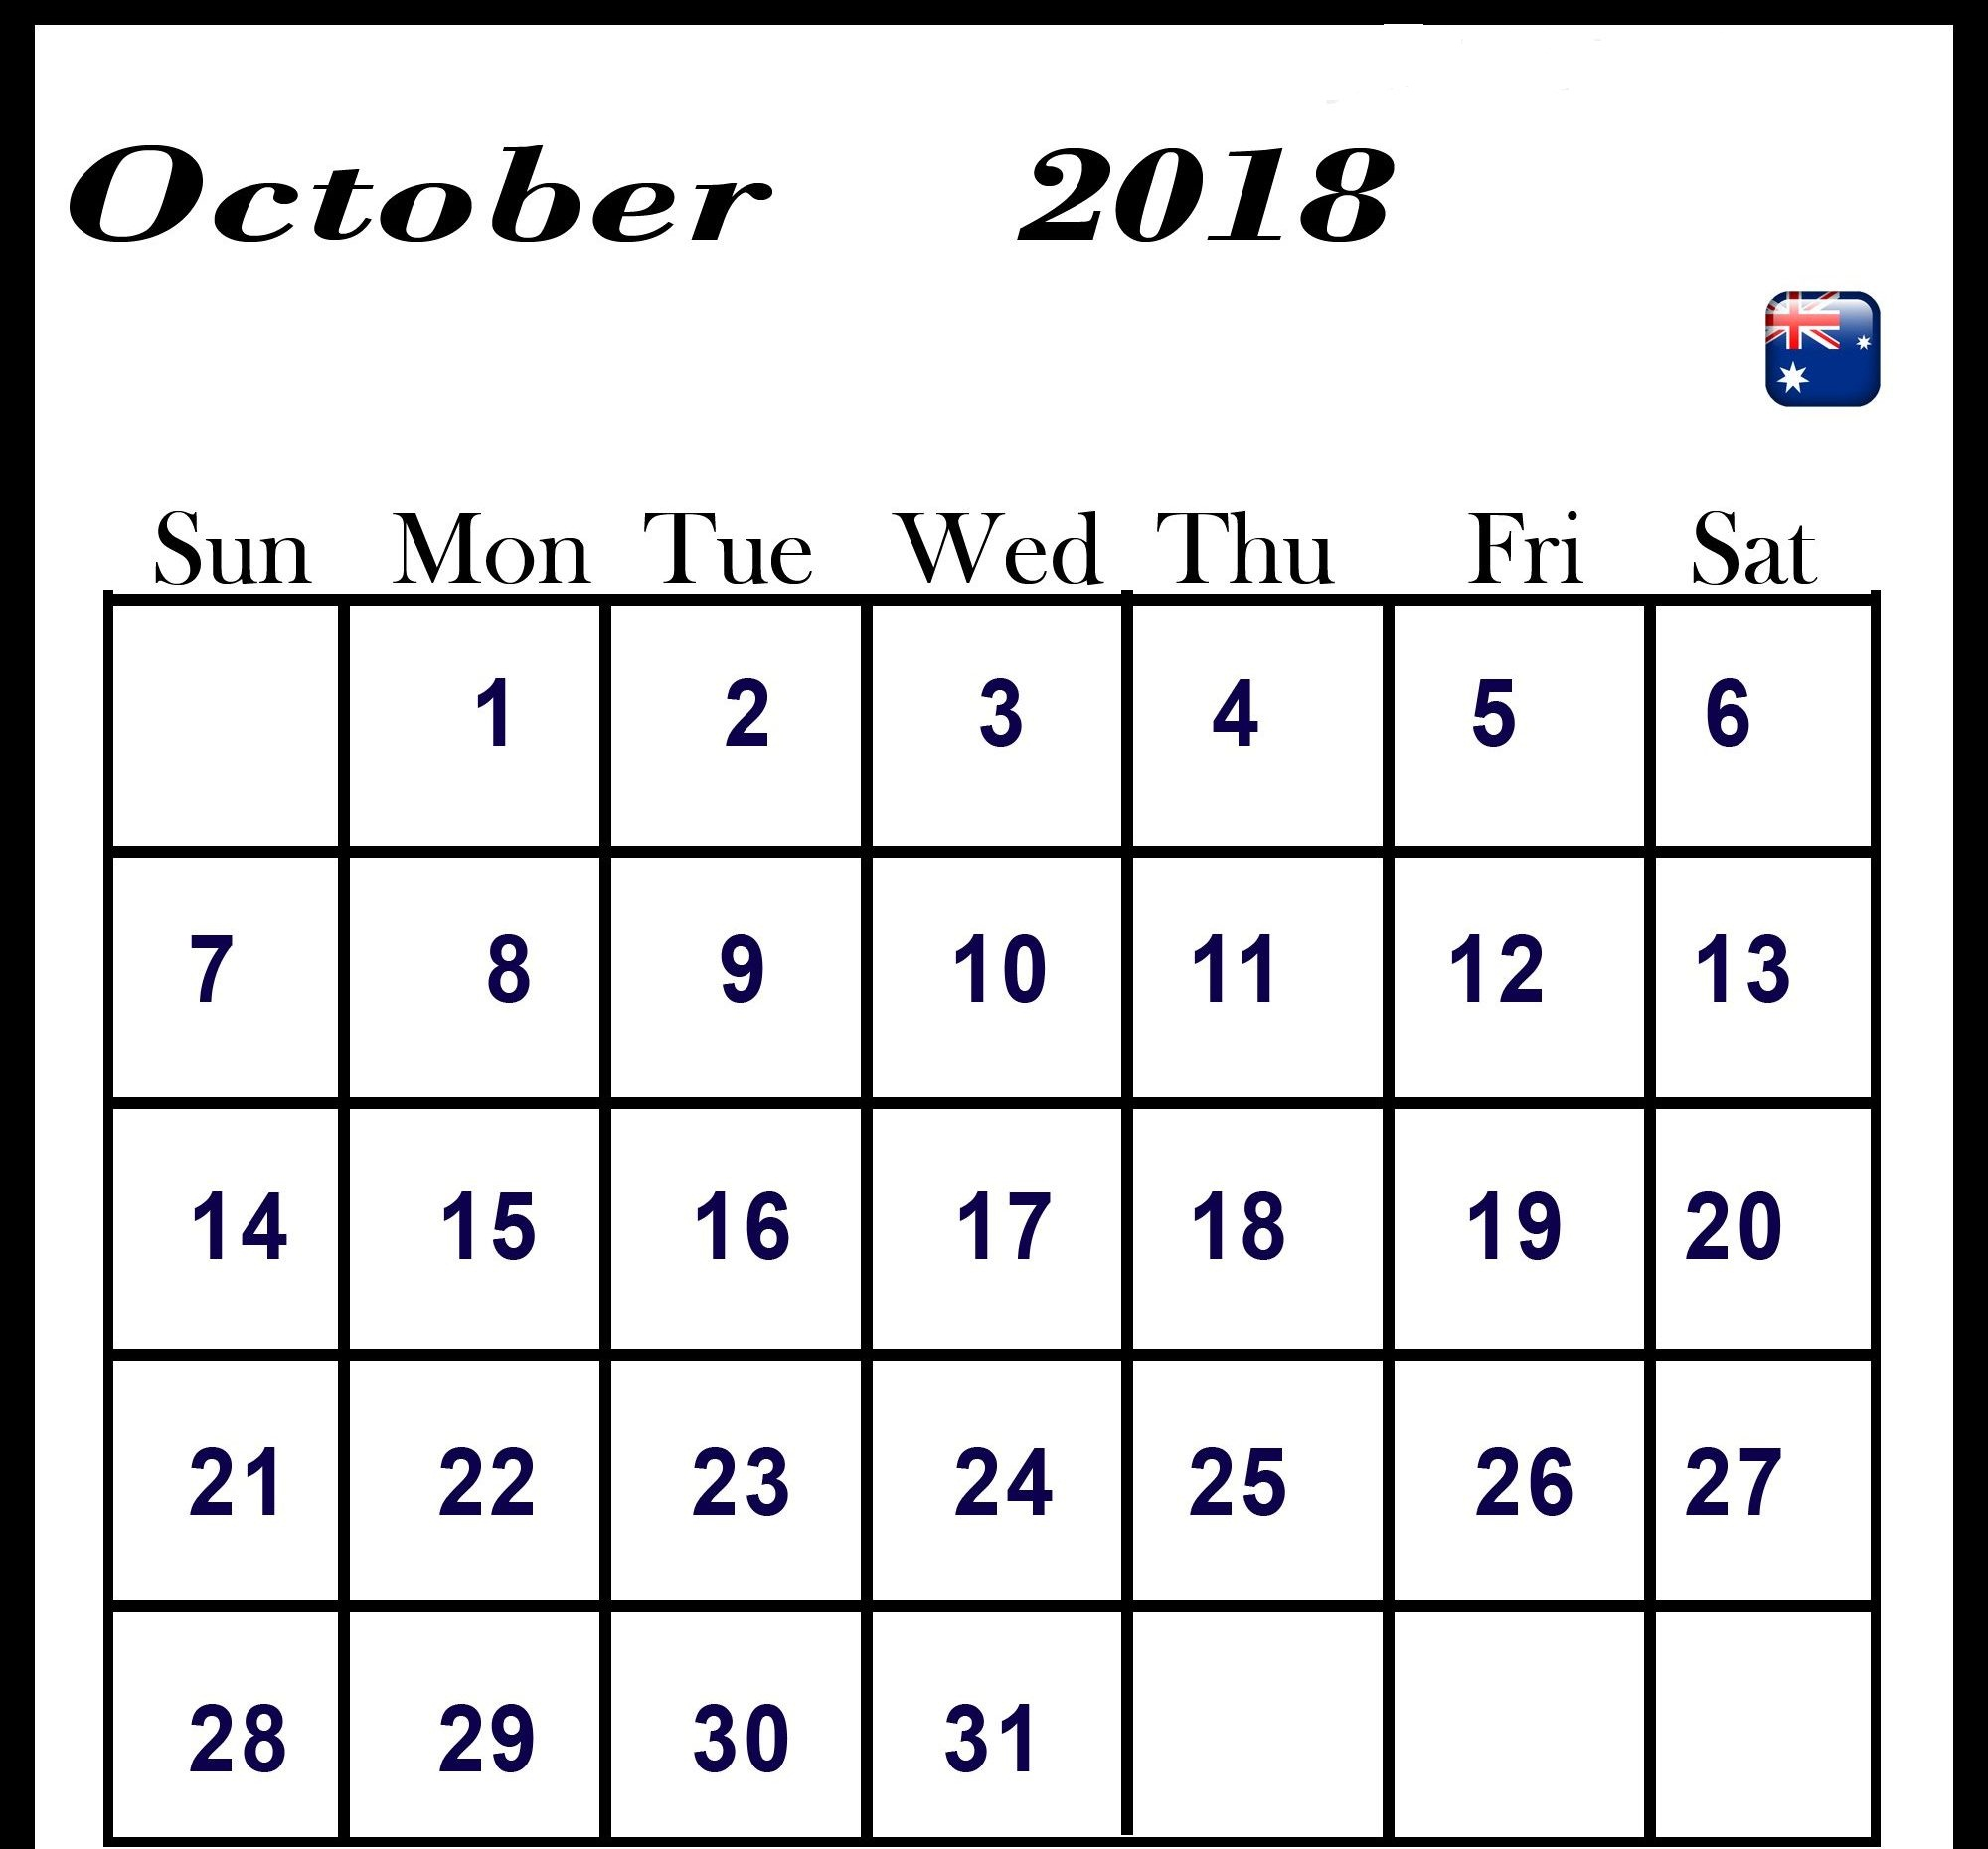 October 2018 Calendar Australia National Holidays